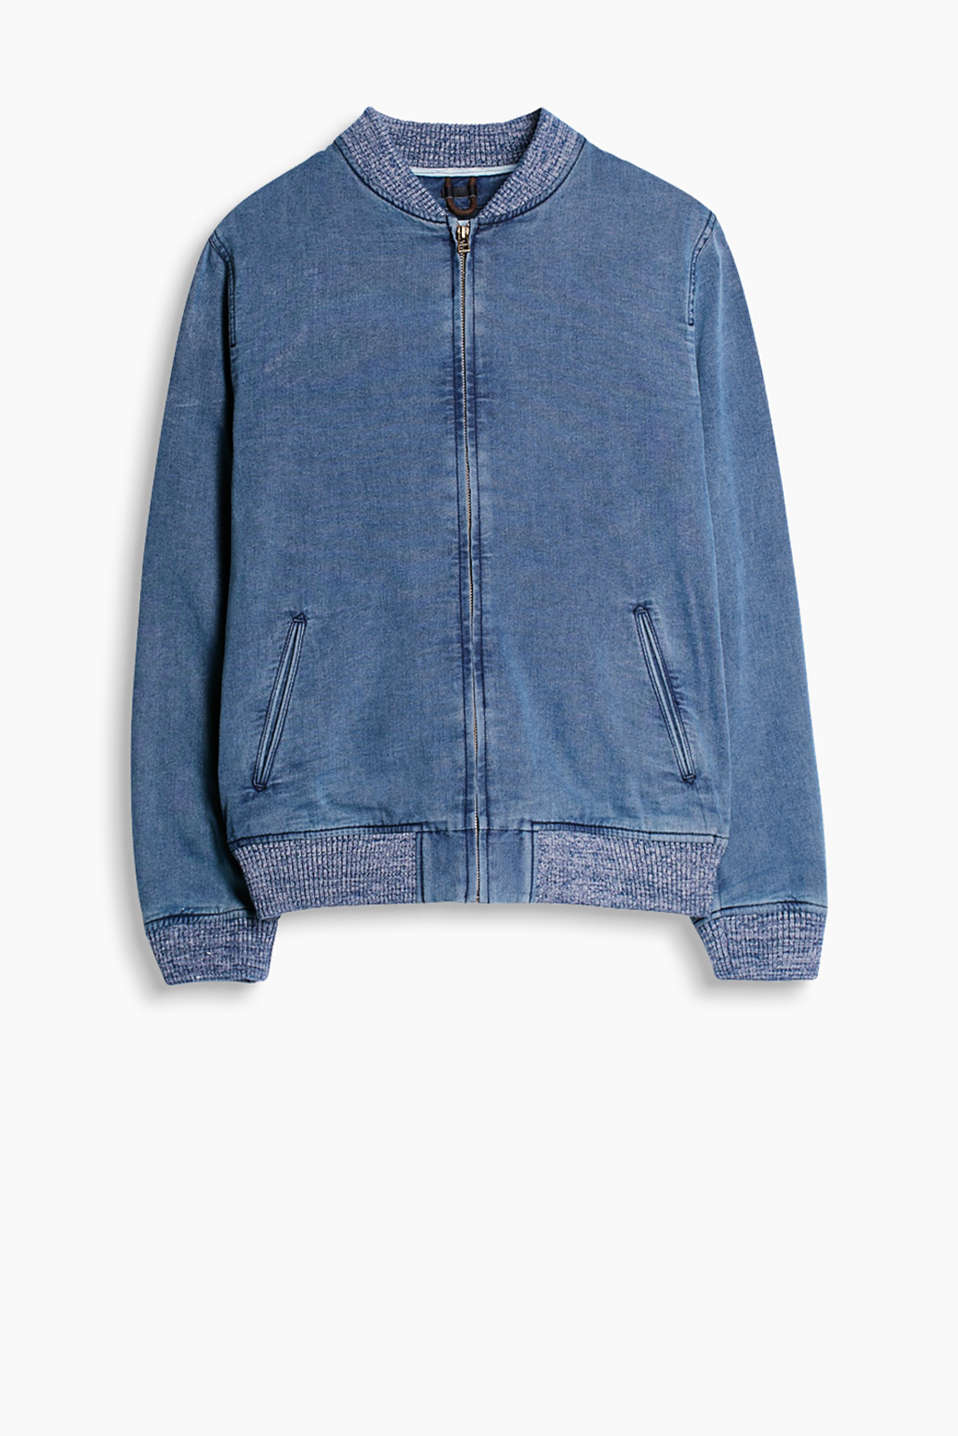 Denim-effect bomber jacket with a garment-washed finish and knitted borders